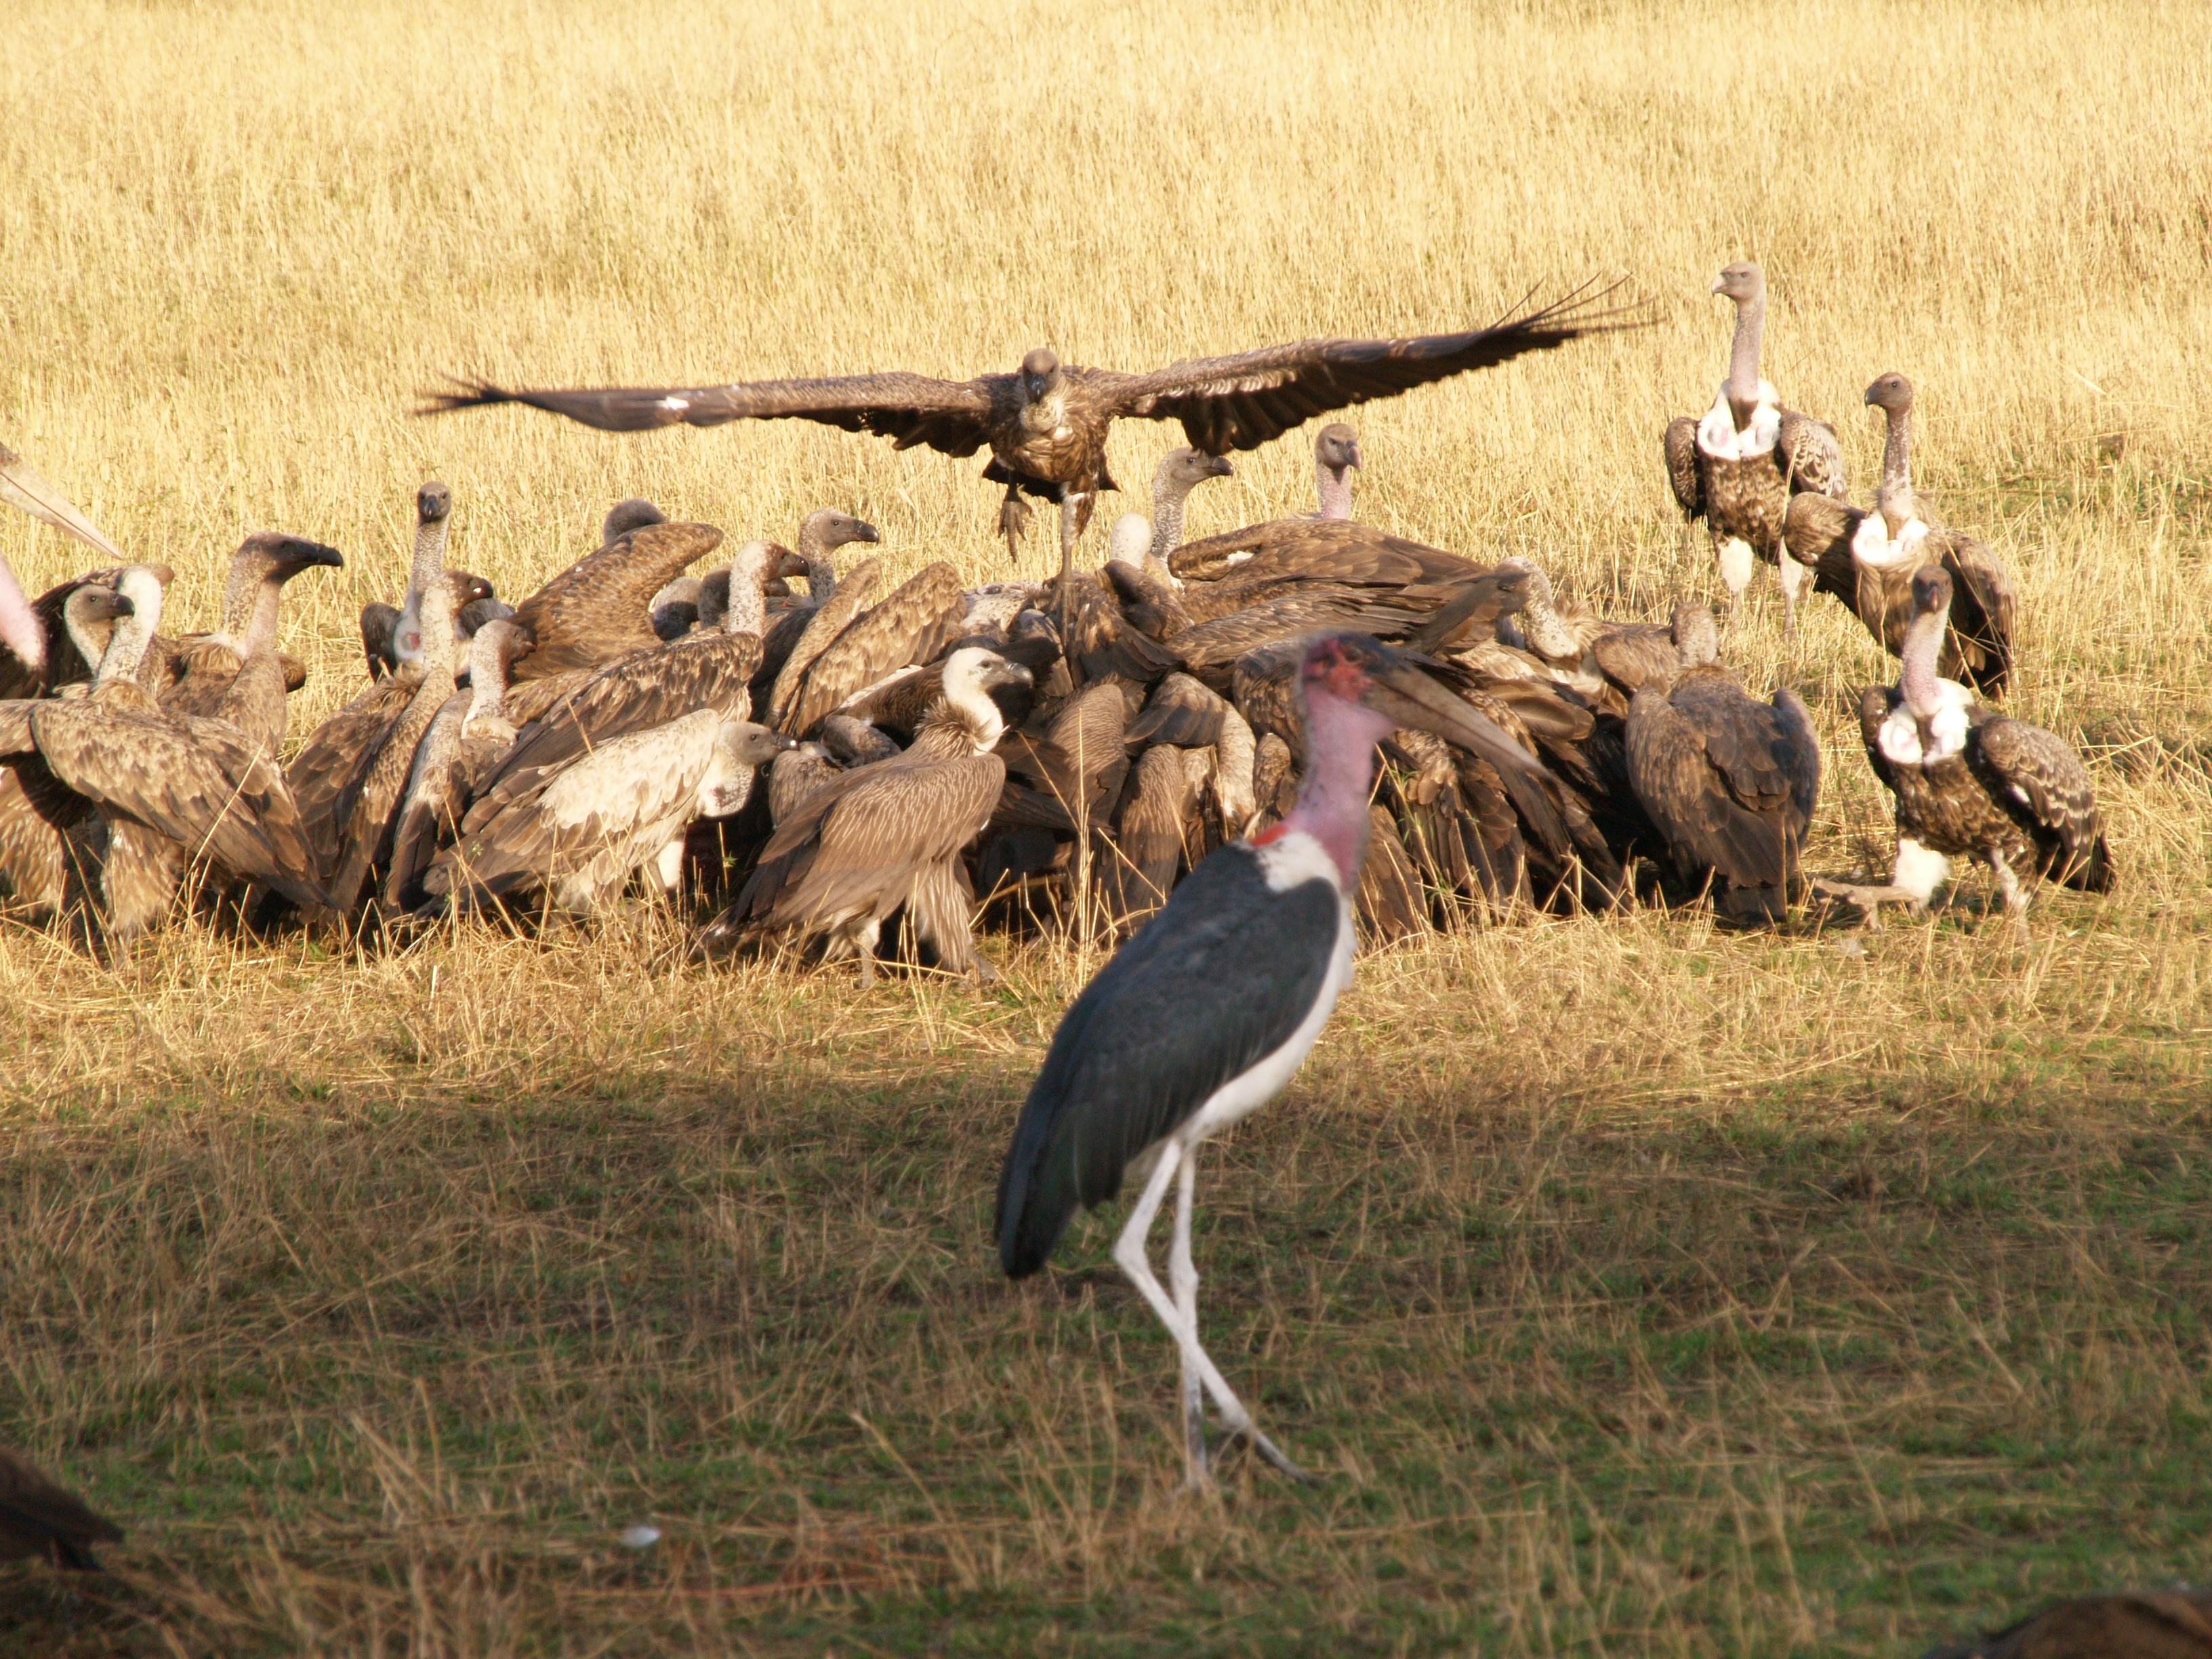 vultures with a marabou stork in the foreground also vying for food